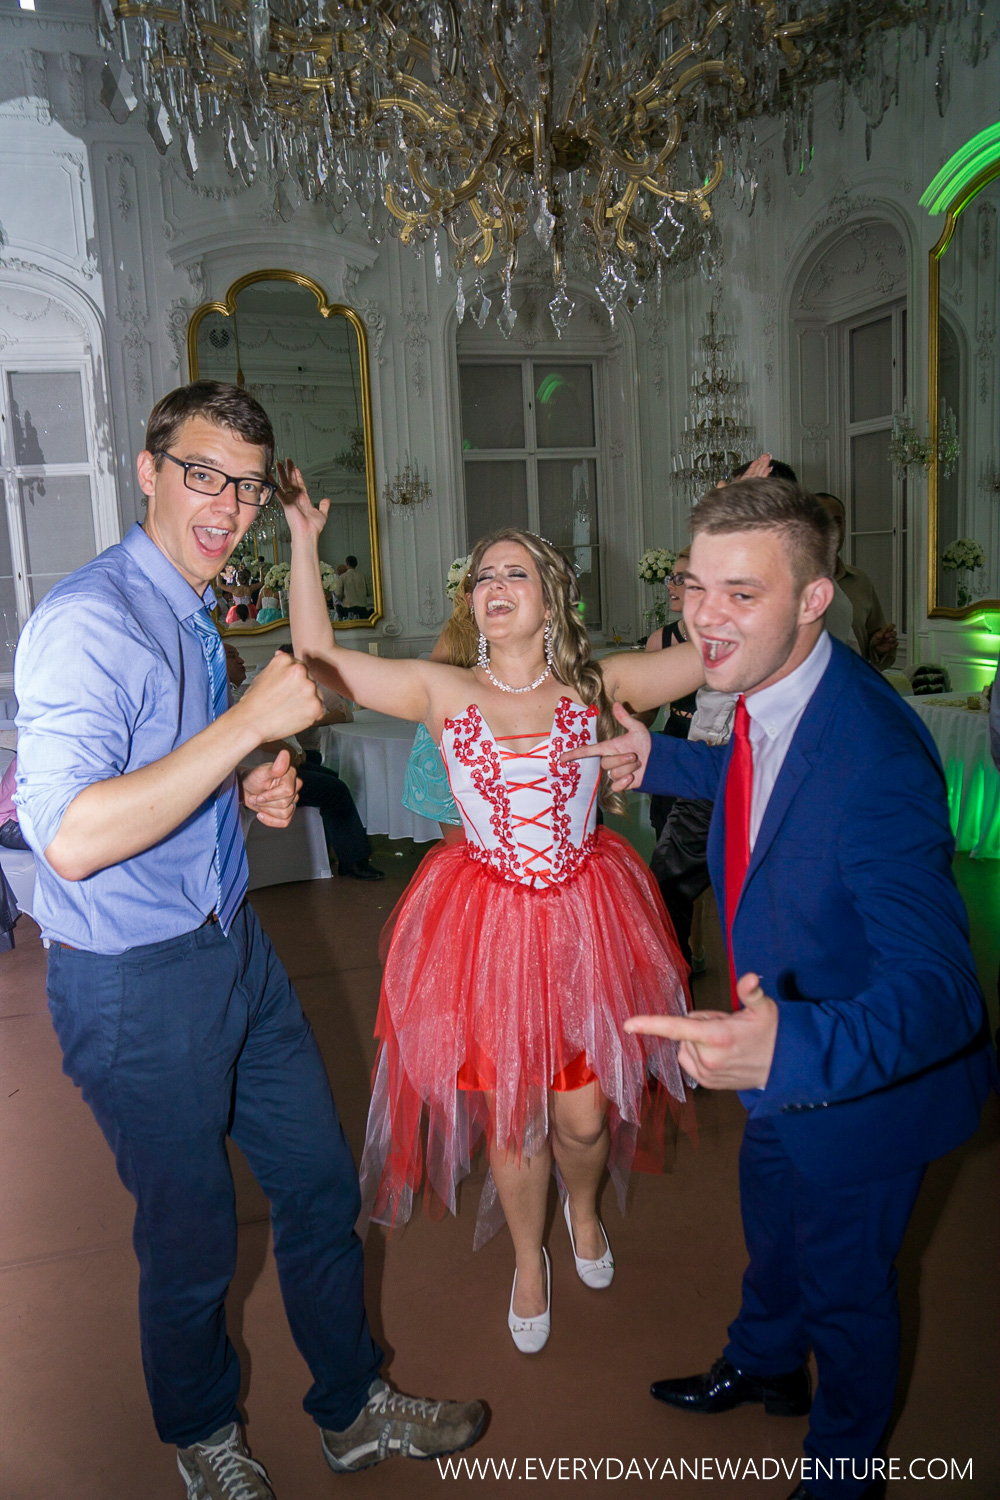 Jake dancing the night away with the bride and goom in their new outfits